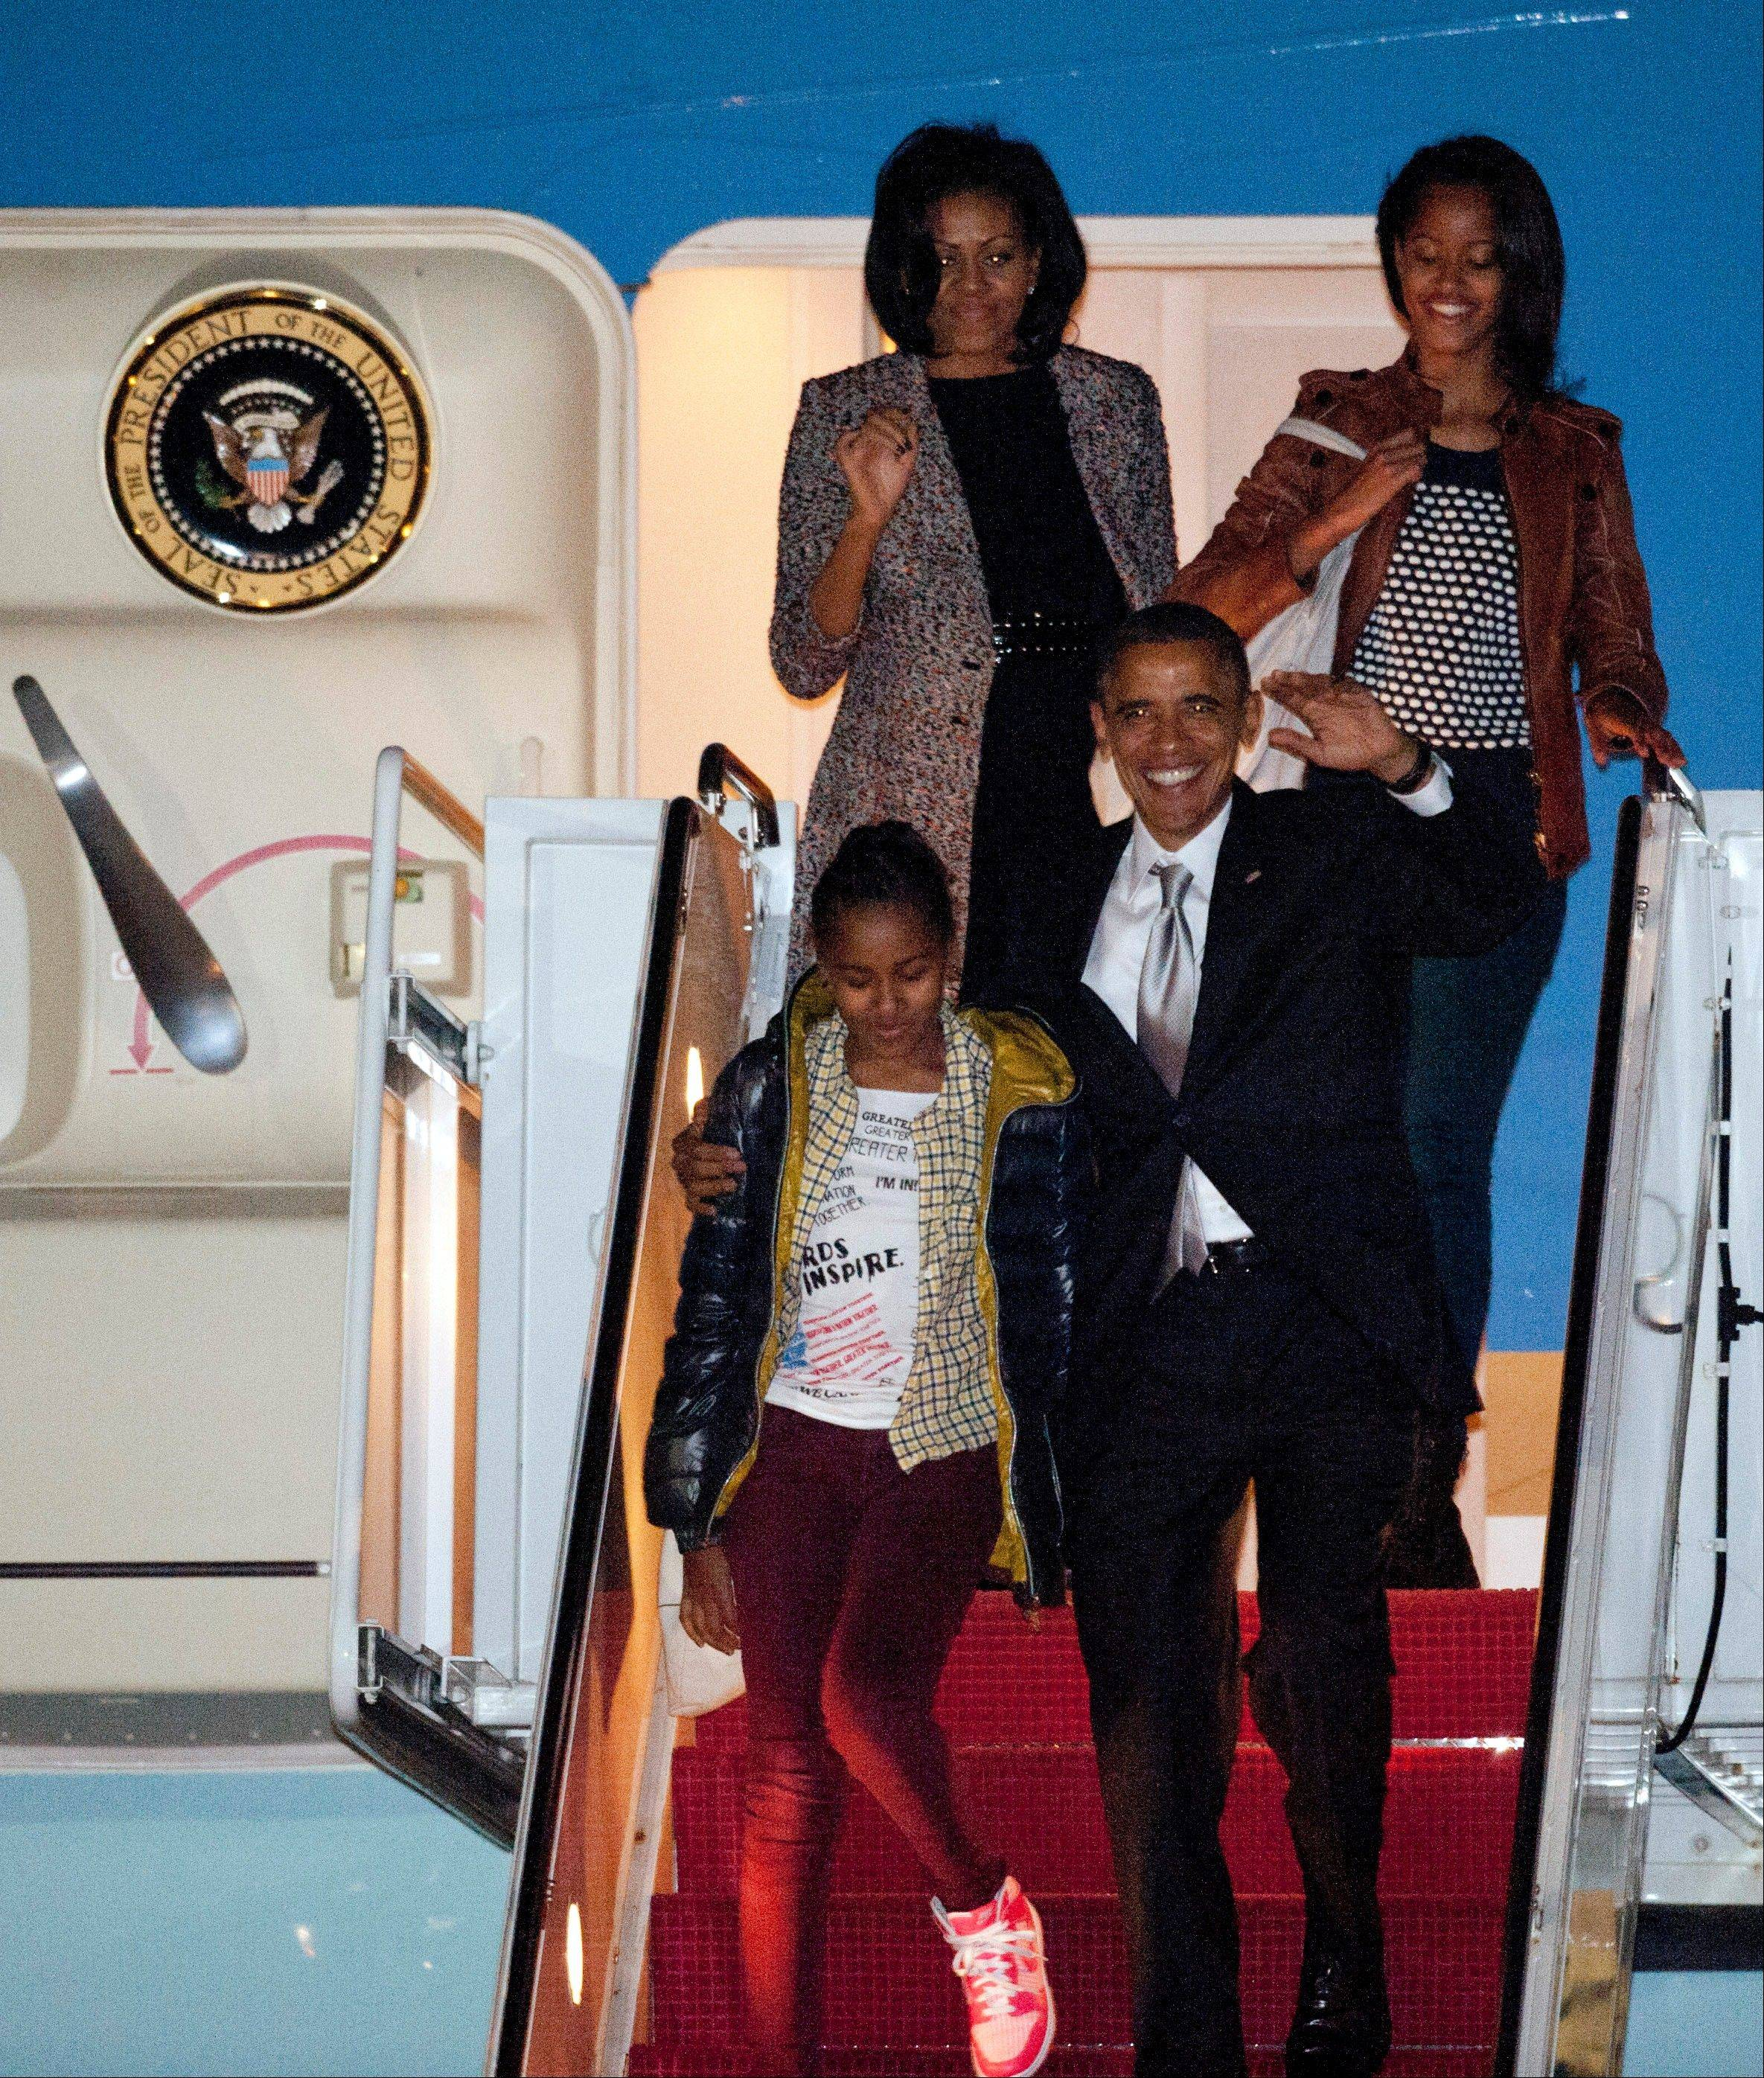 President Barack Obama, with his arm around daughter Sasha, and first lady Michelle Obama and eldest daughter Malia exit Air Force One at Andrews Air Force Base, Md., after a flight from Chicago on Wednesday.